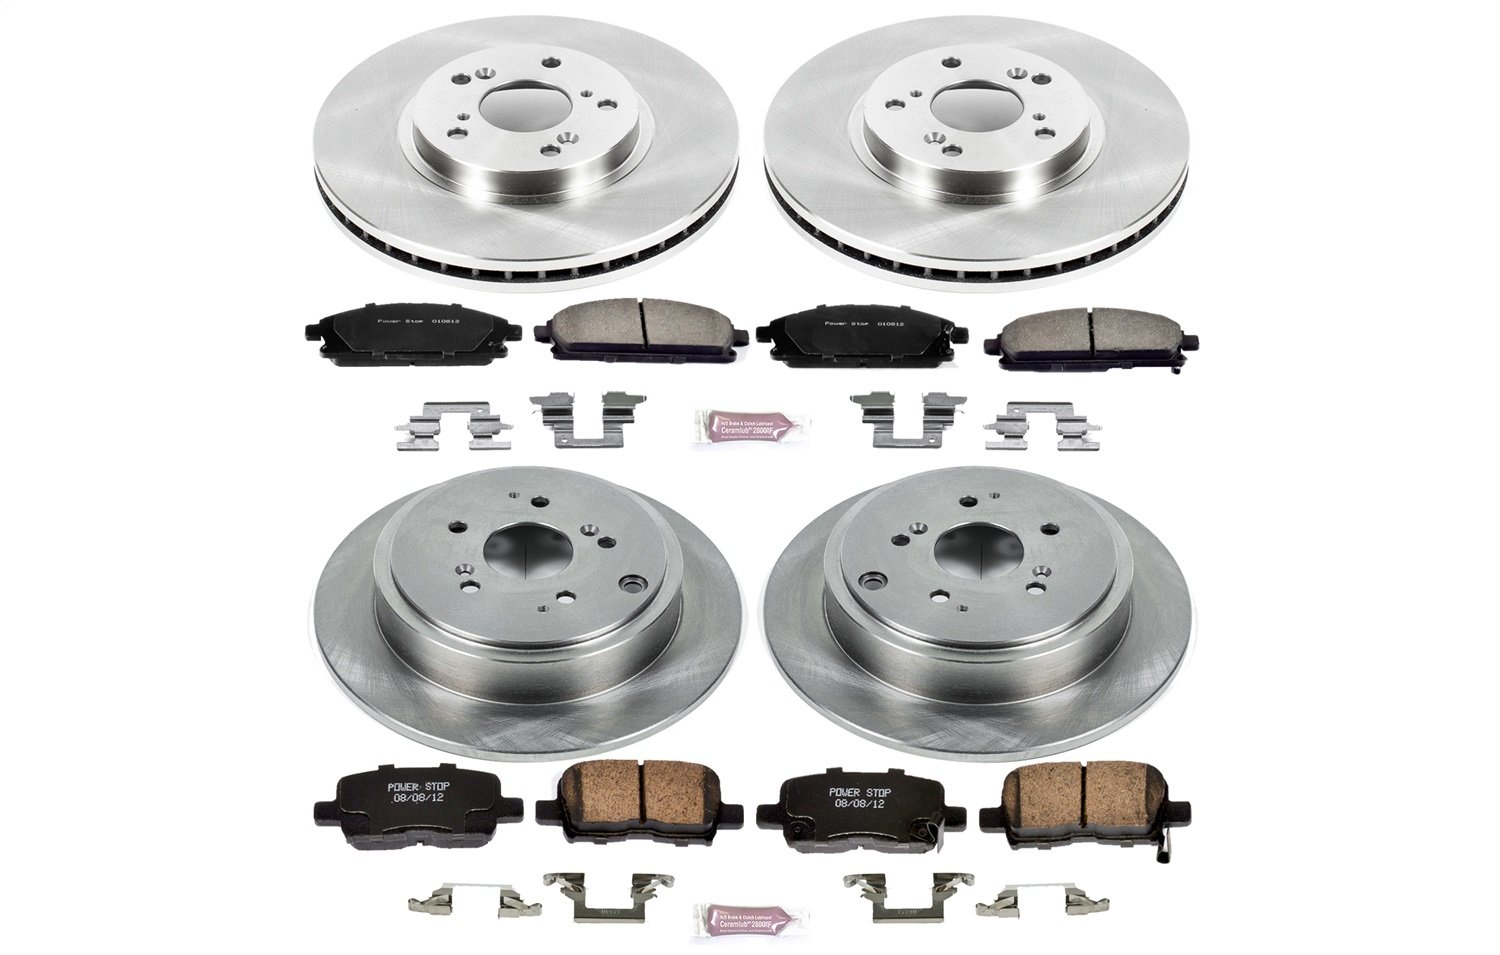 Autospecialty KOE2291 1-Click OE Replacement Brake Kit by Power Stop